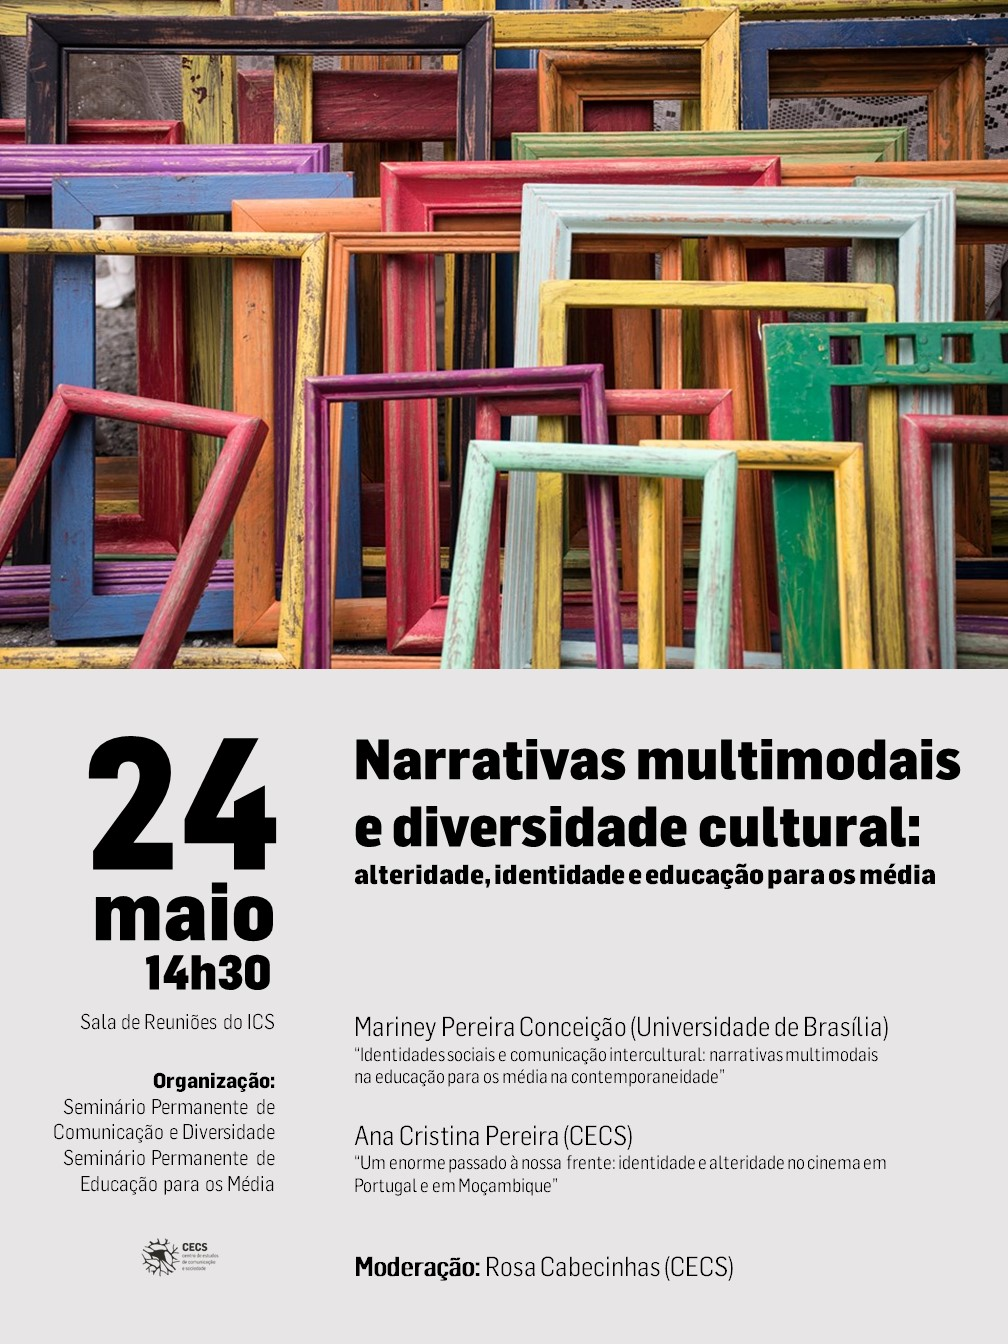 Multimodal narratives and cultural diversity: alterity, identity and education for the media